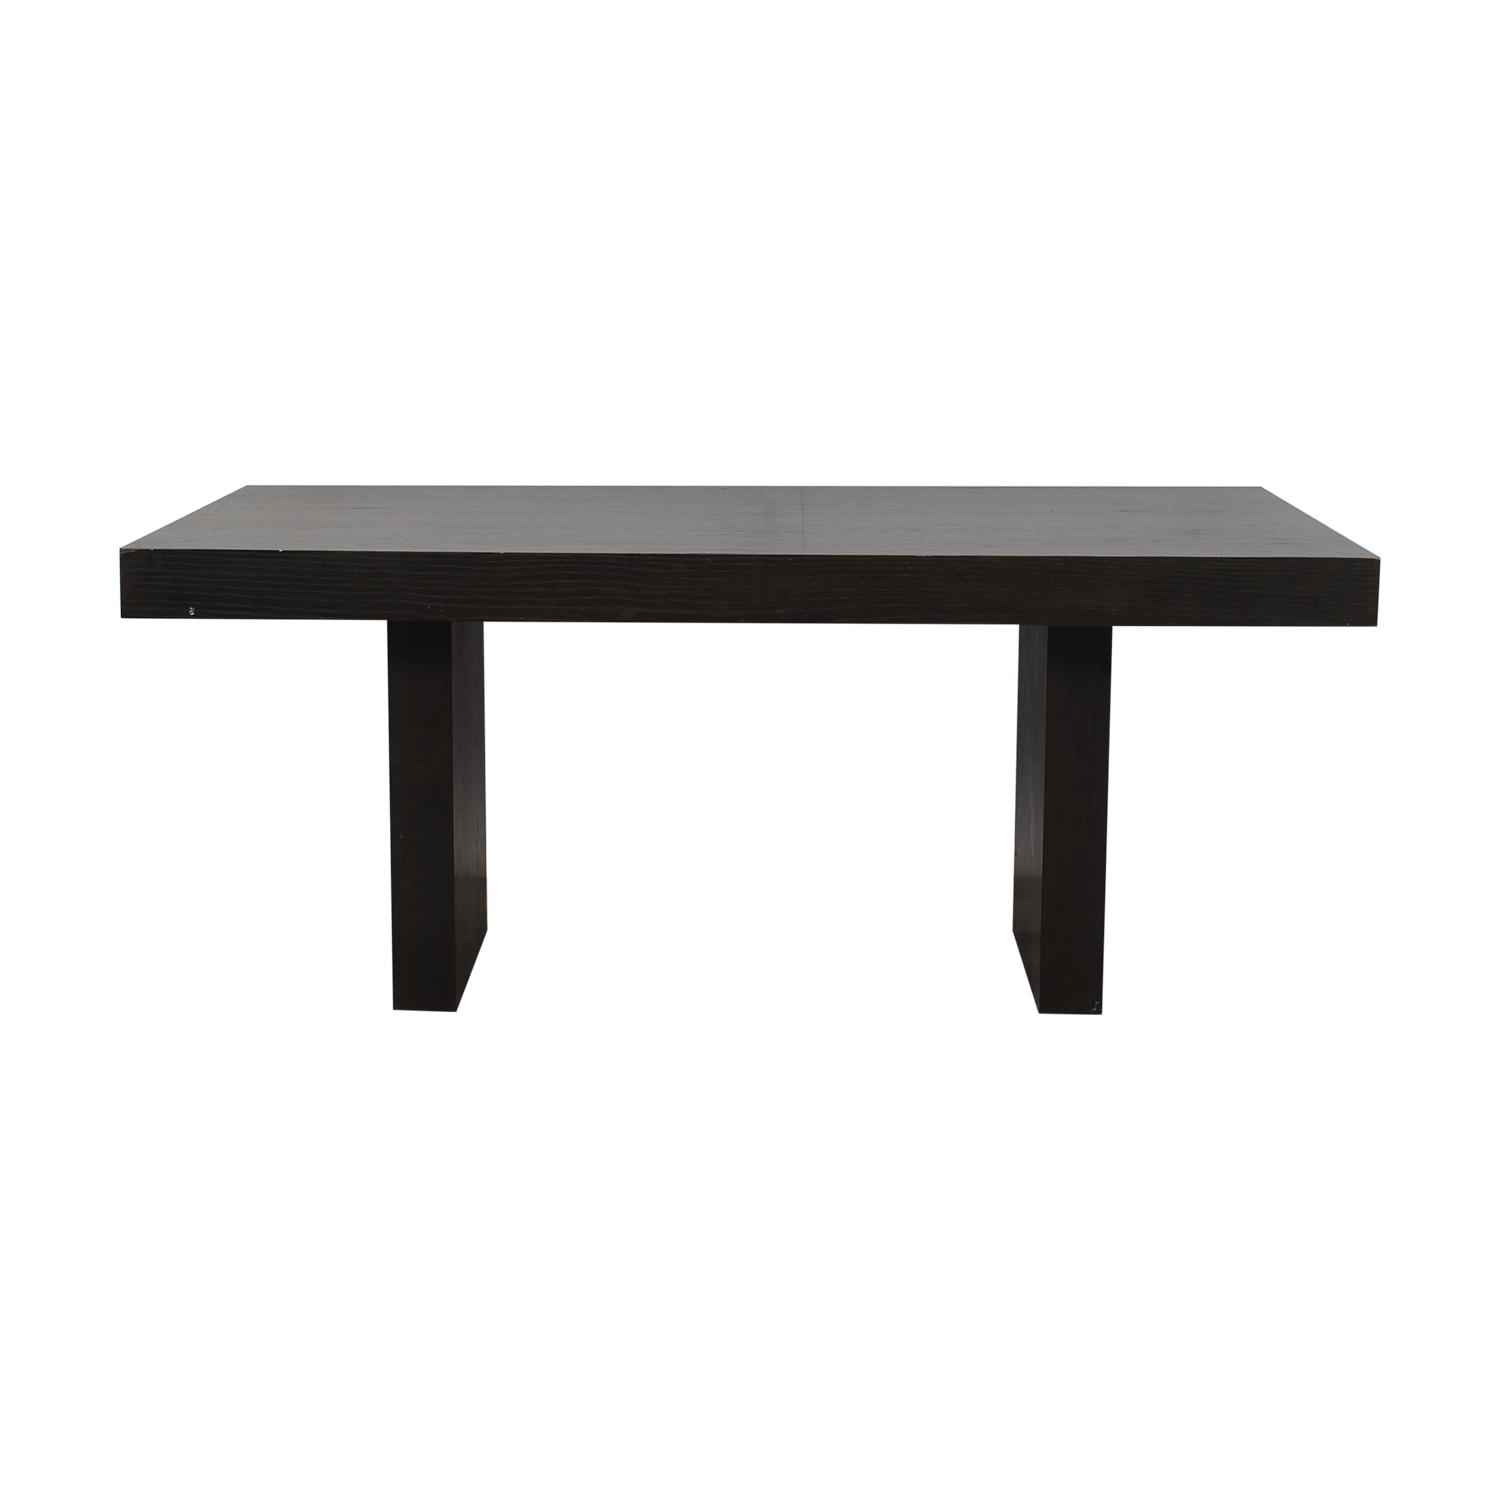 West Elm West Elm Terra Dining Table discount